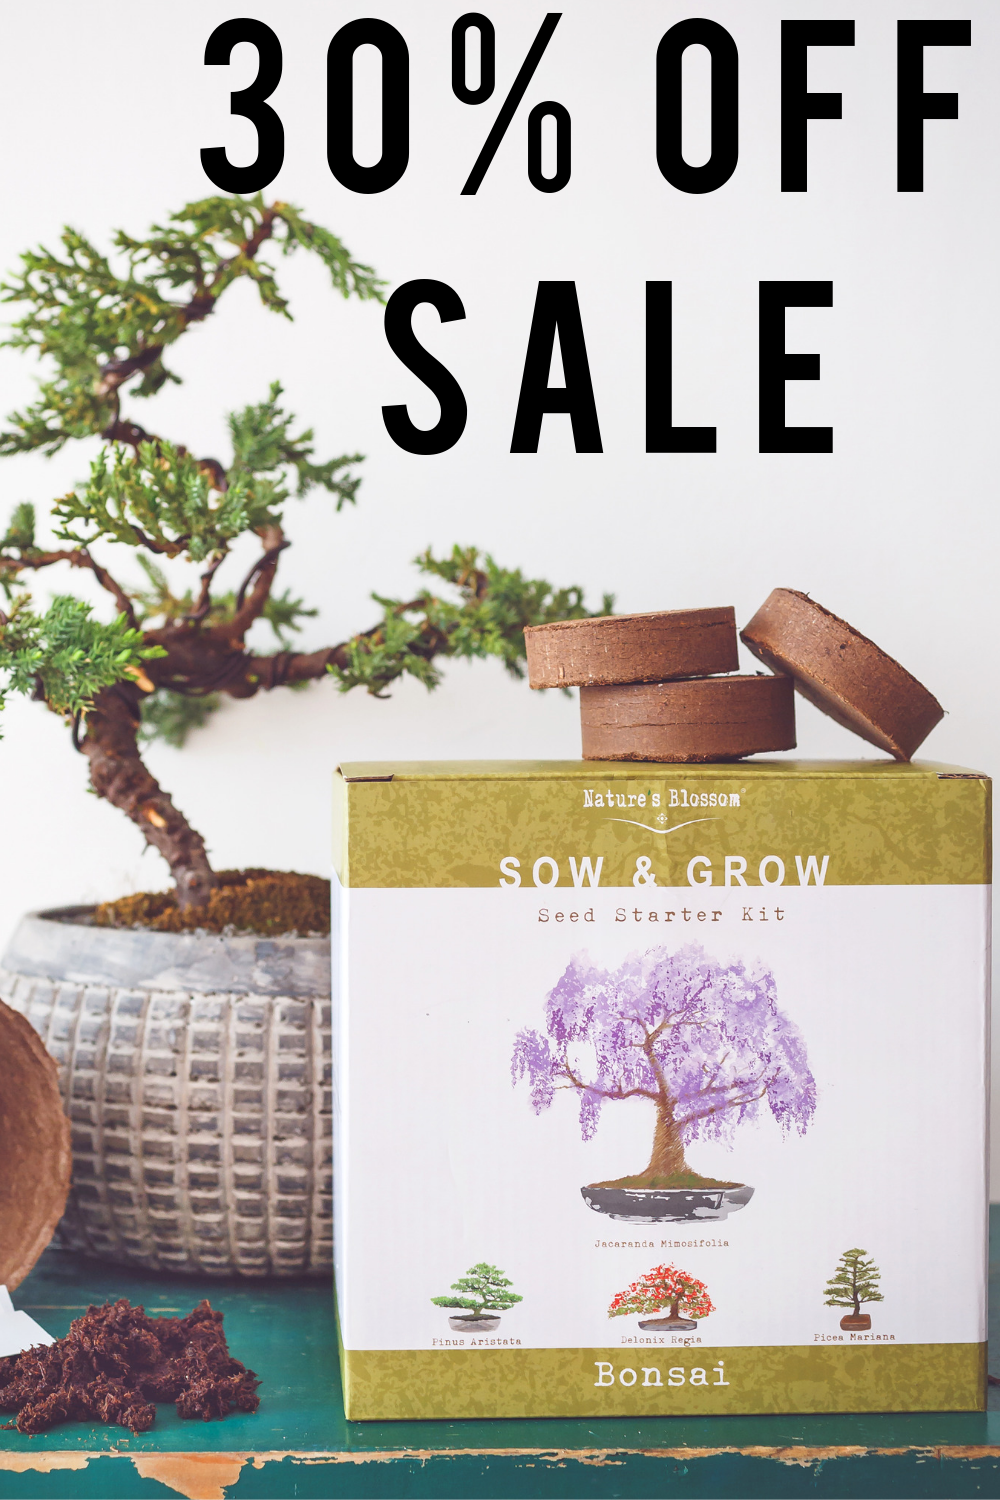 Bonsai Tree Seed Starter Kit Discount Code Etsylaunch30 Until July 31st Get Growing Today Bonsai Tree Types Herb Garden Kit Unique Garden Gifts